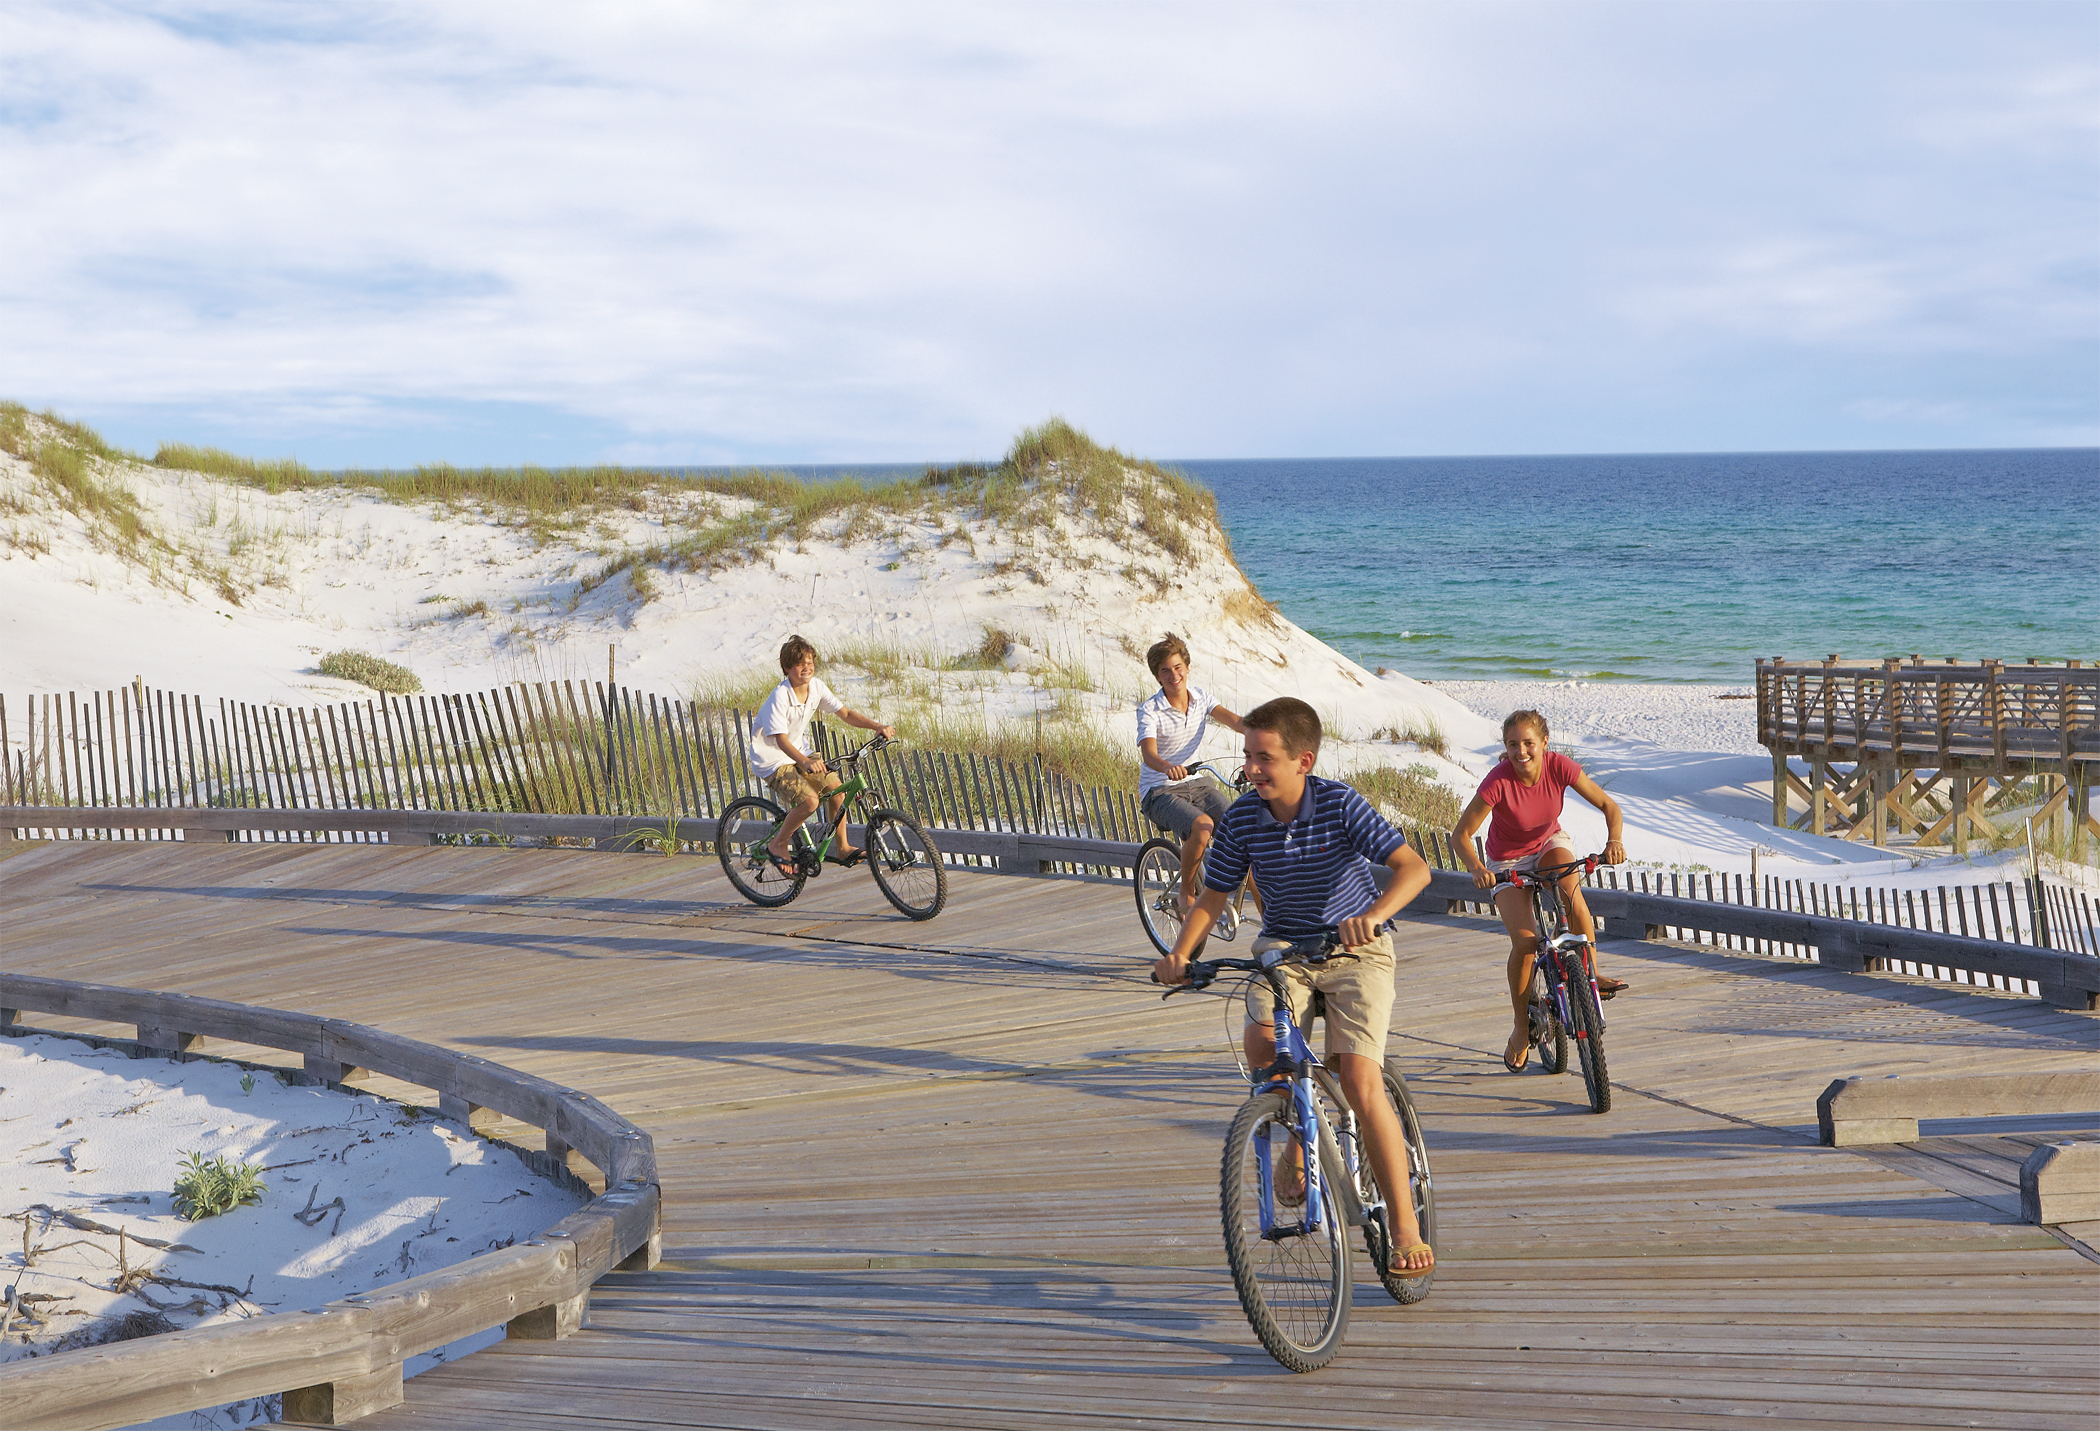 Riding bikes on the watersound boardwalk